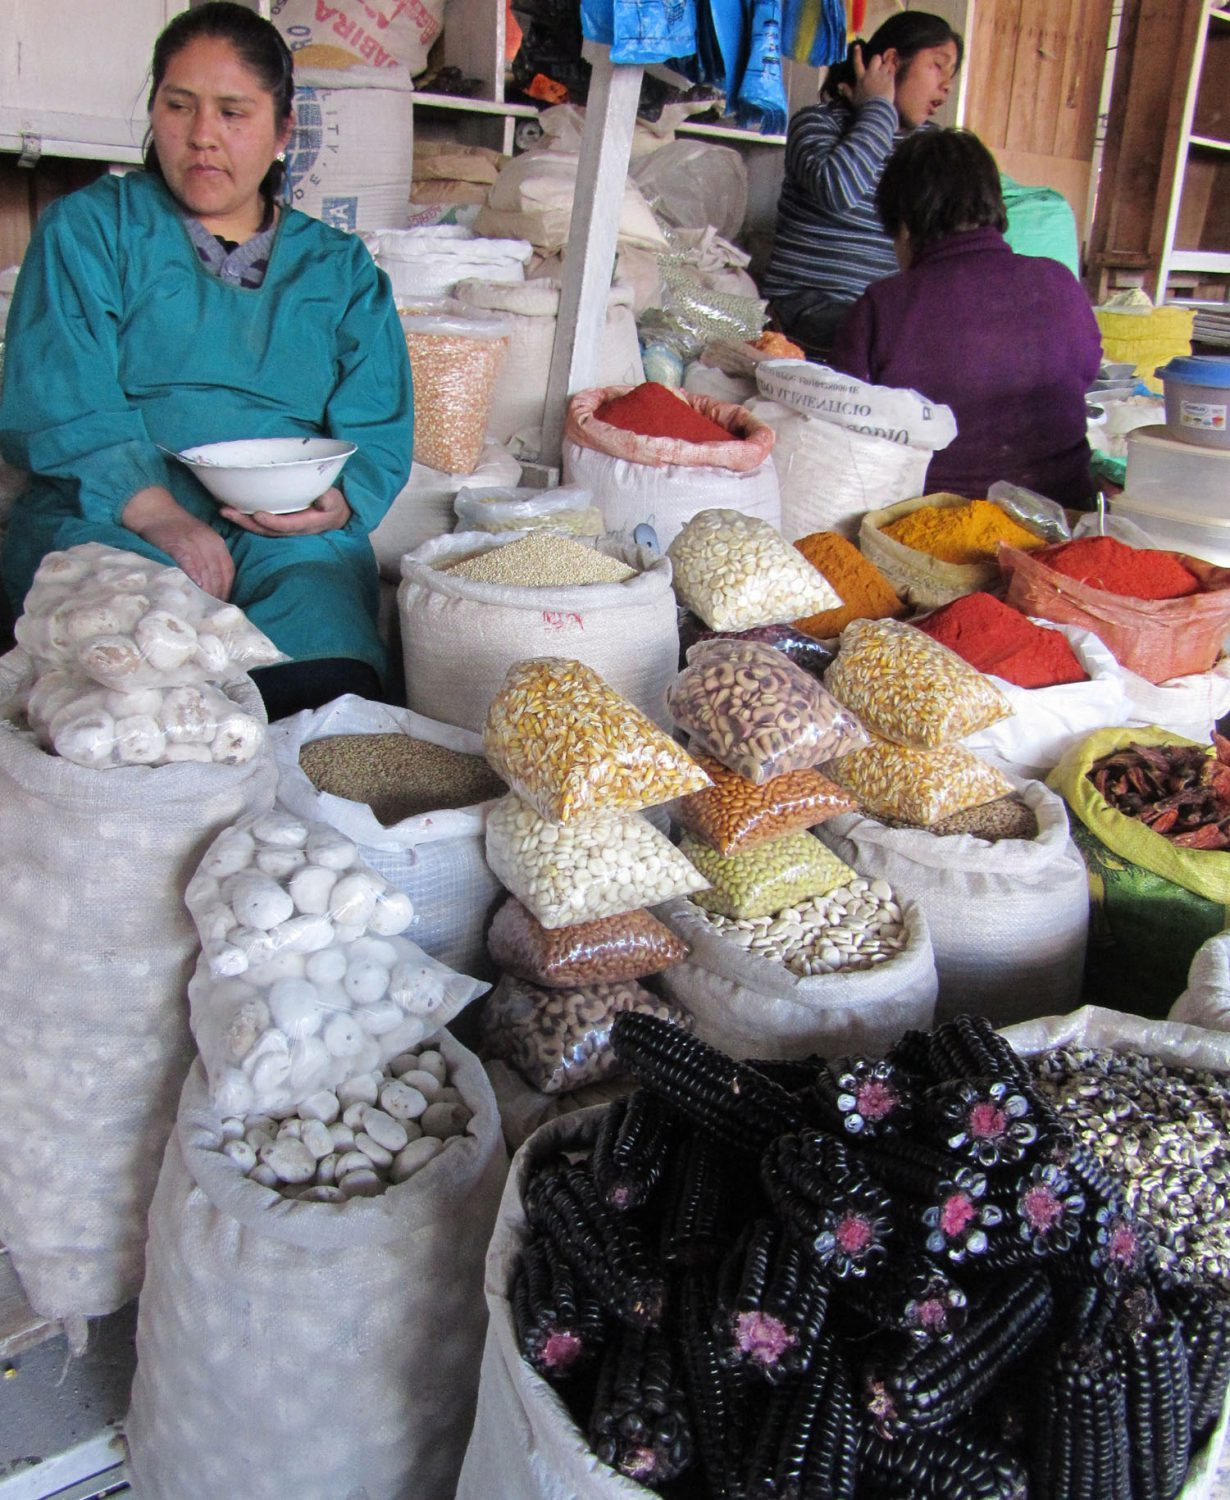 travel-stories-peru-cusco-the-lady-at-mercado-san-pedro-2